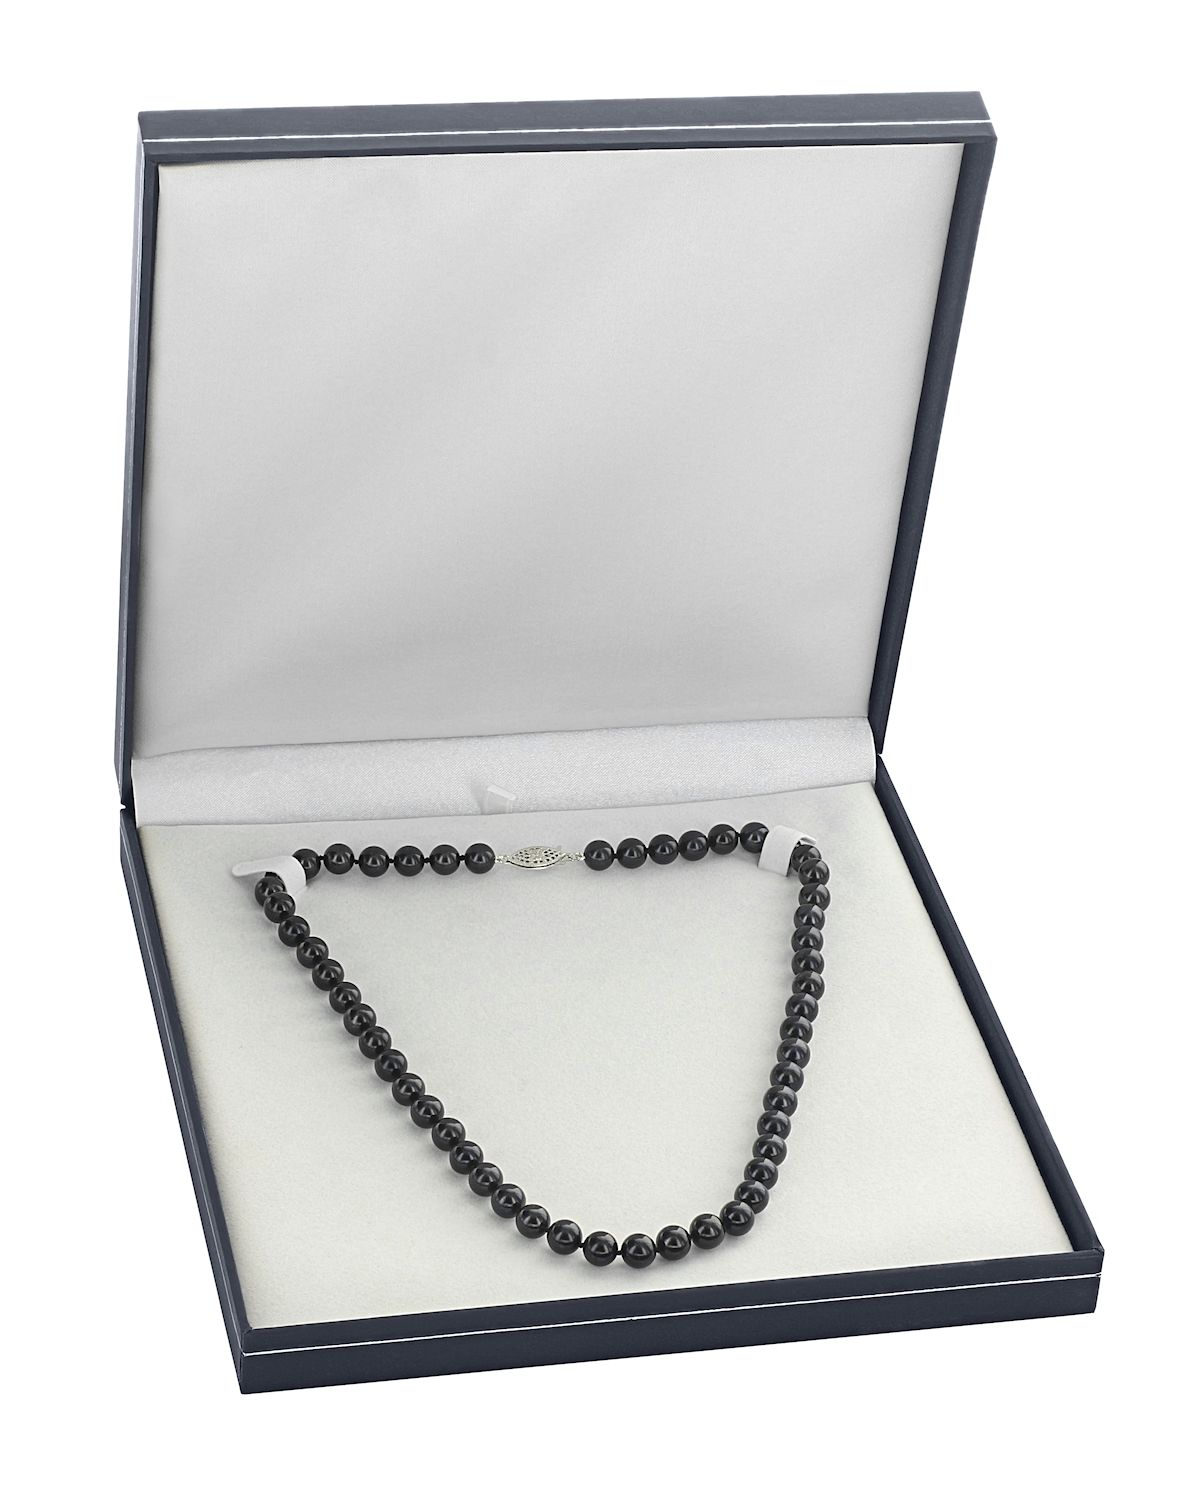 5.5-6.0mm Japanese Akoya Black Pearl Necklace- AA+ Quality - Third Image